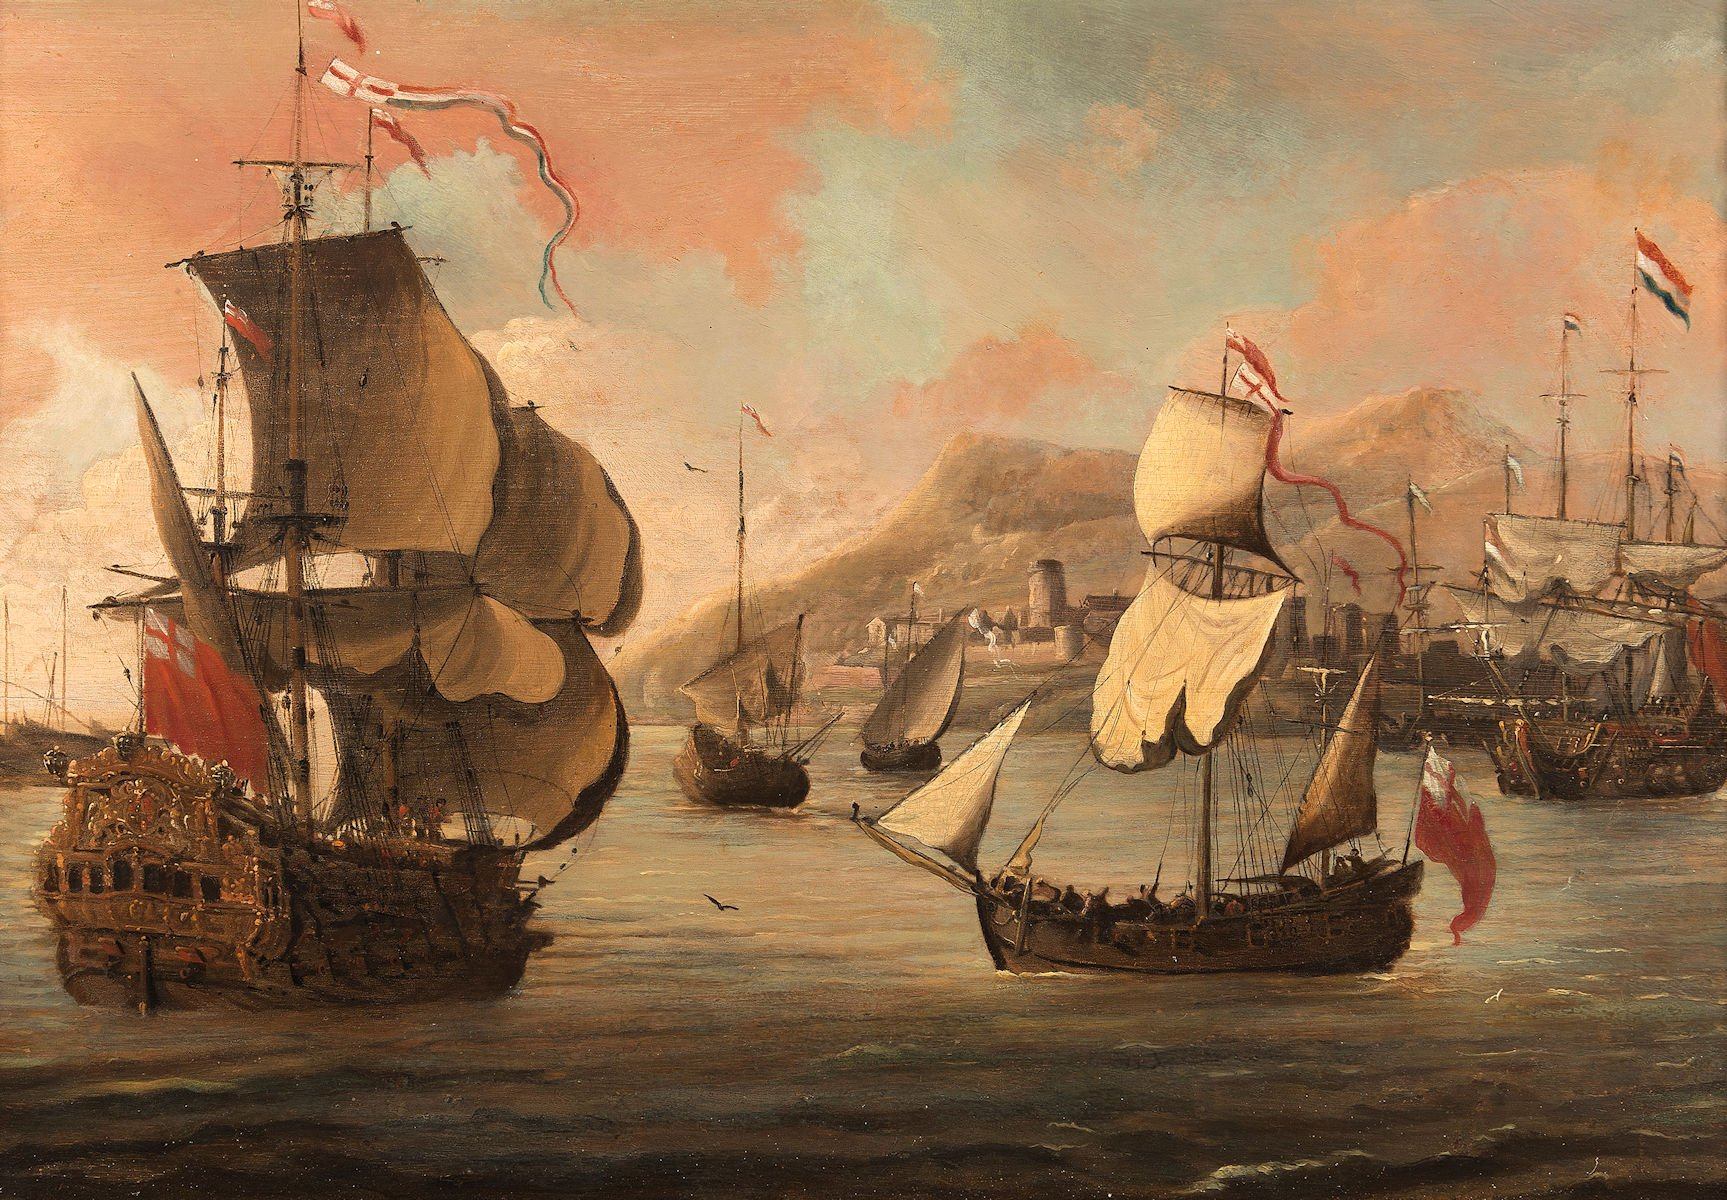 war ships off the coast by Jacob Kniff